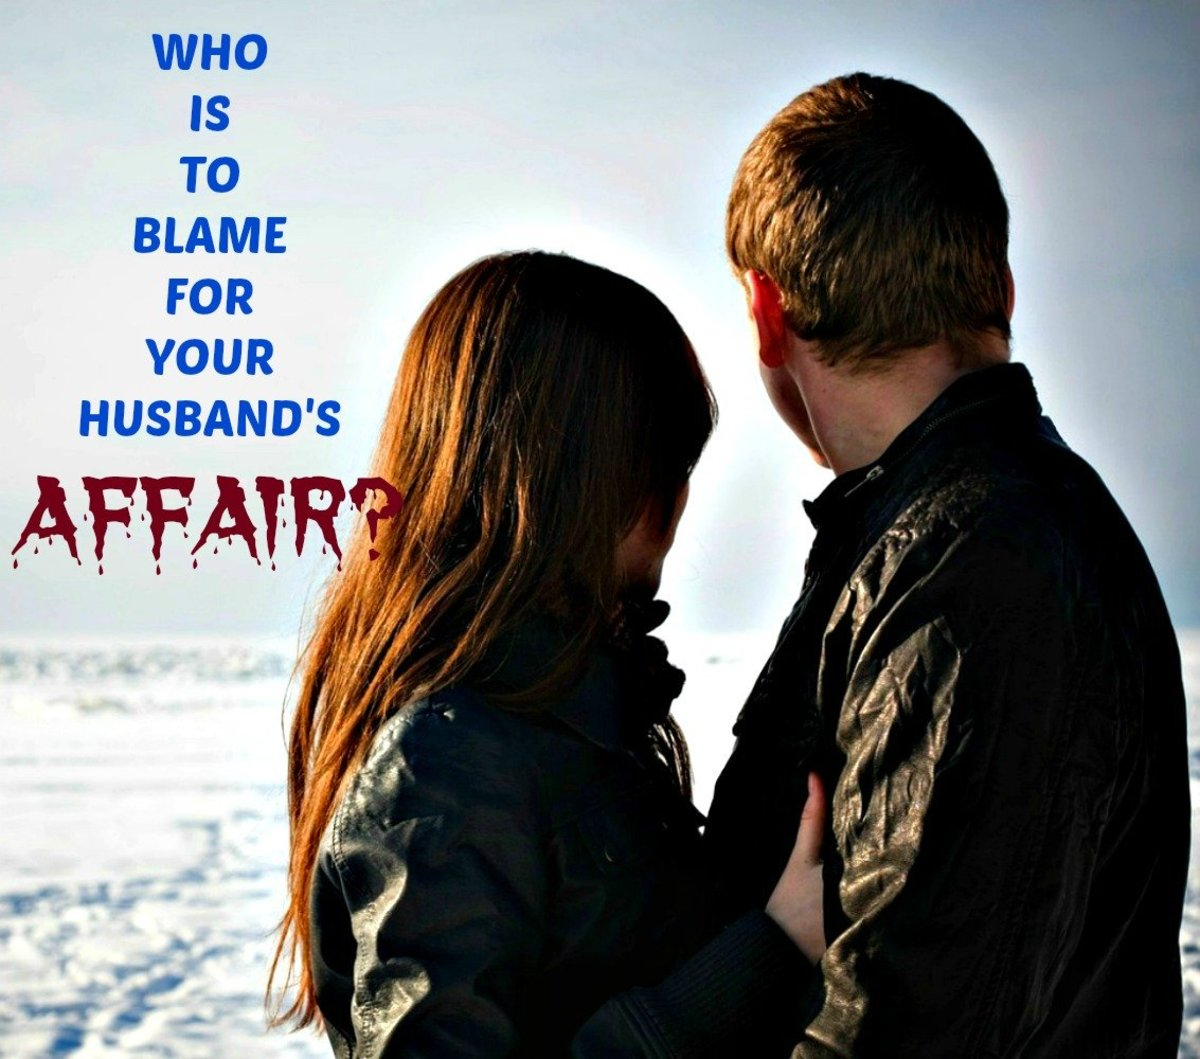 Who Is to Blame for Your Husband's Affair? | PairedLife